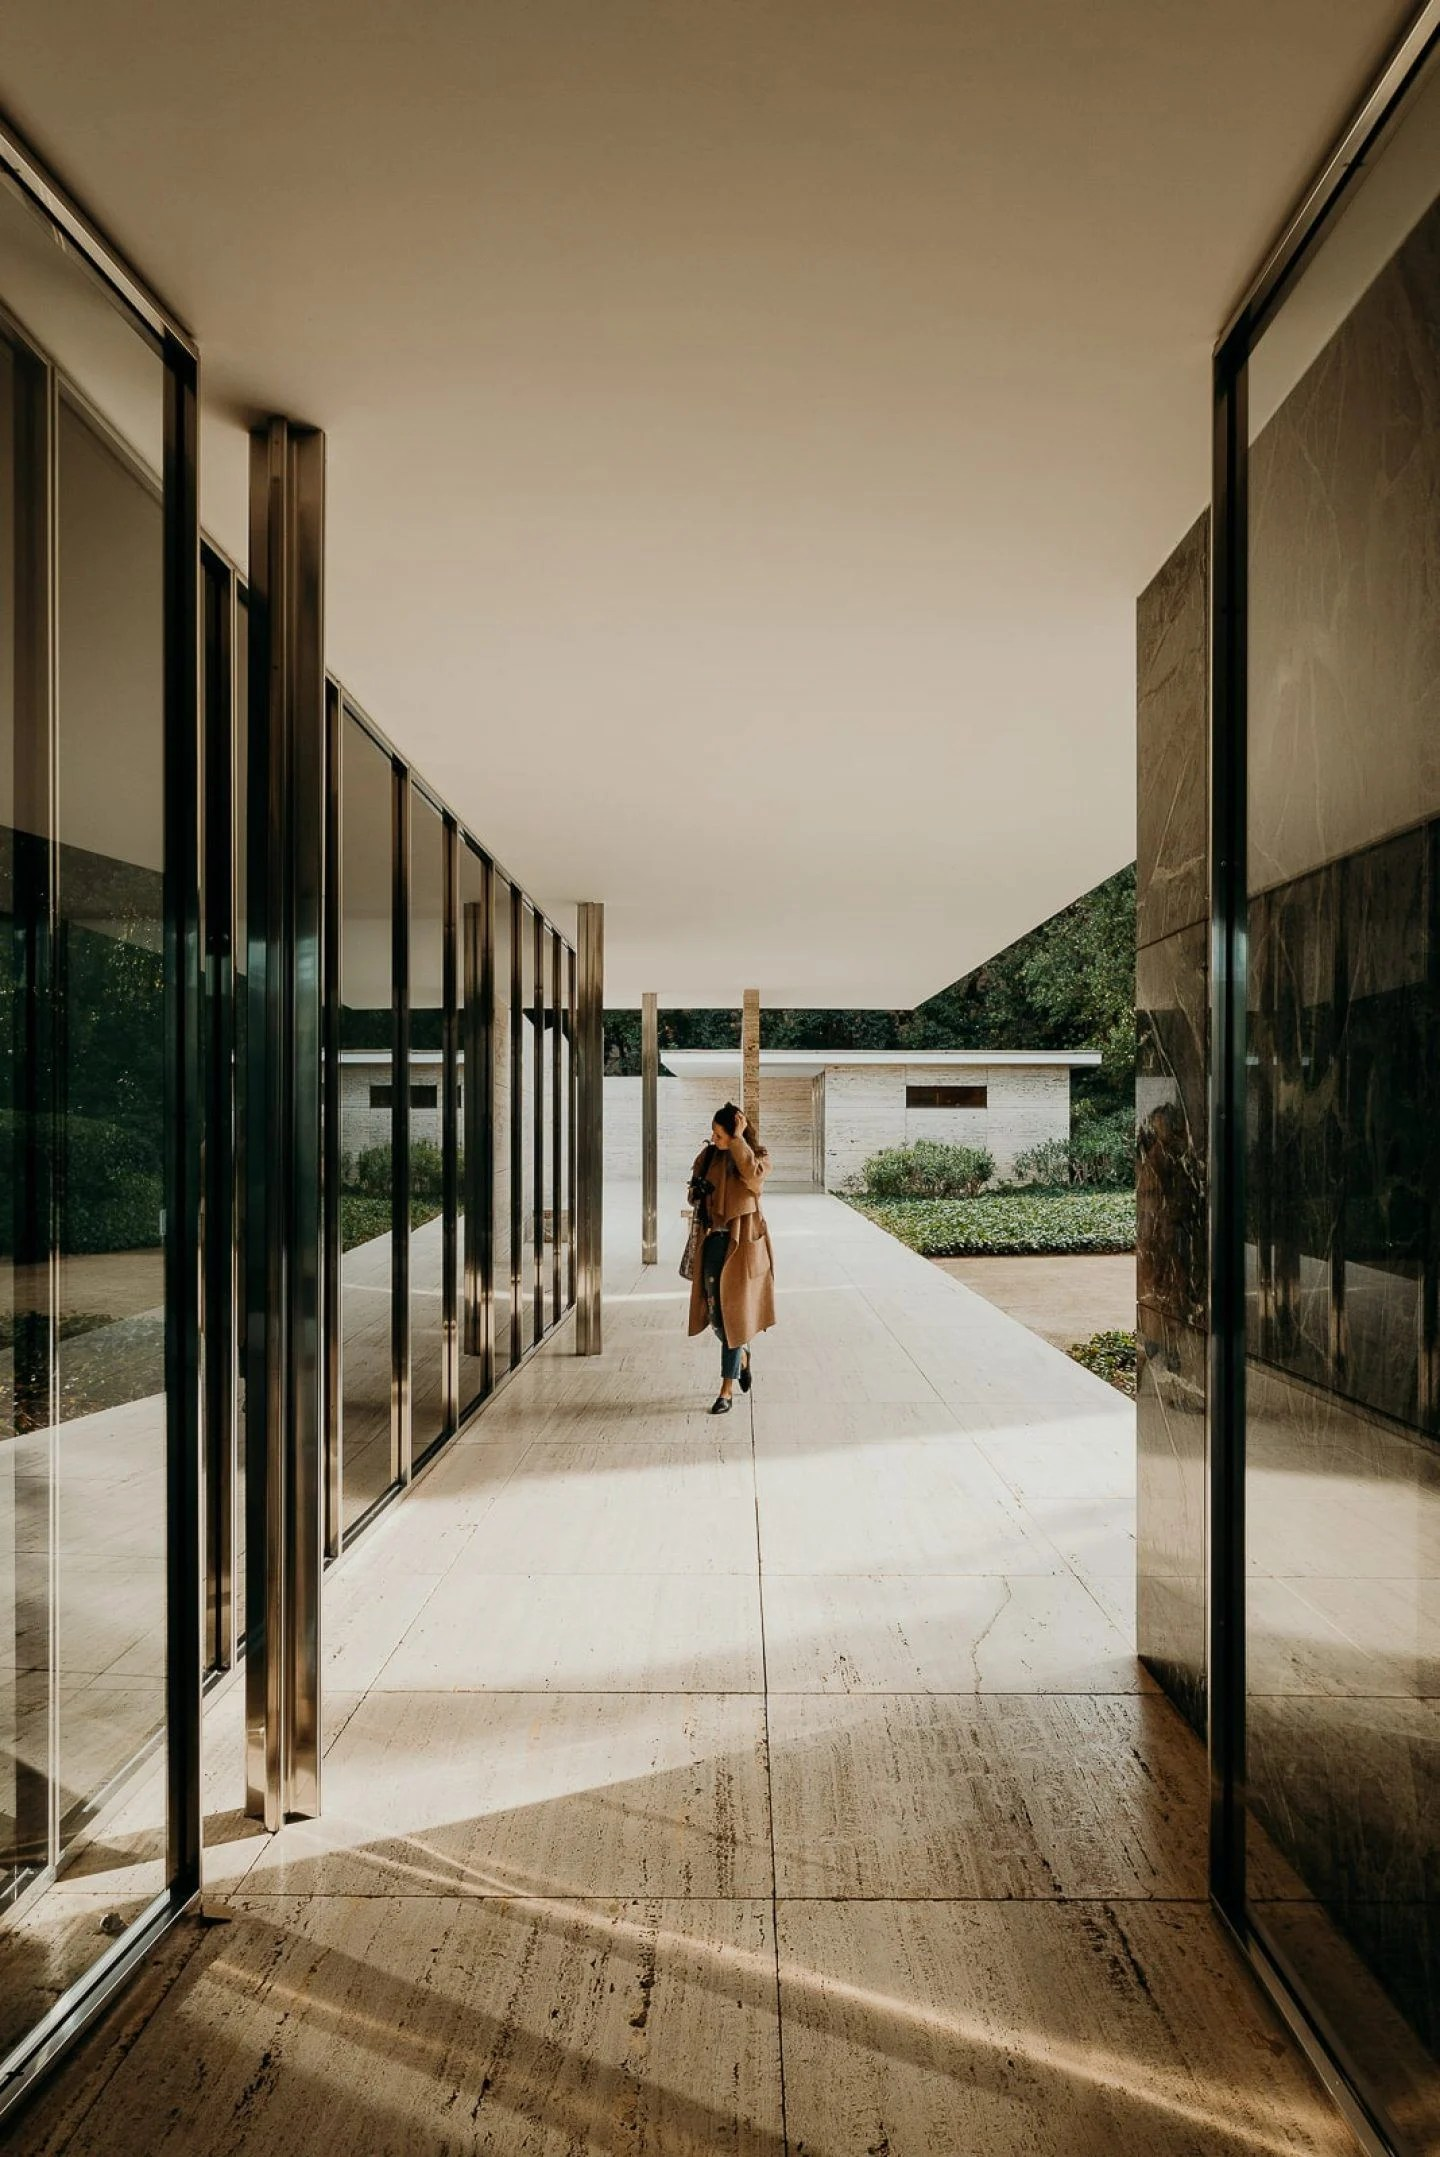 The Barcelona Pavilion By Ludwig Mies Van Der Rohe Is A Textural Delight Ignant